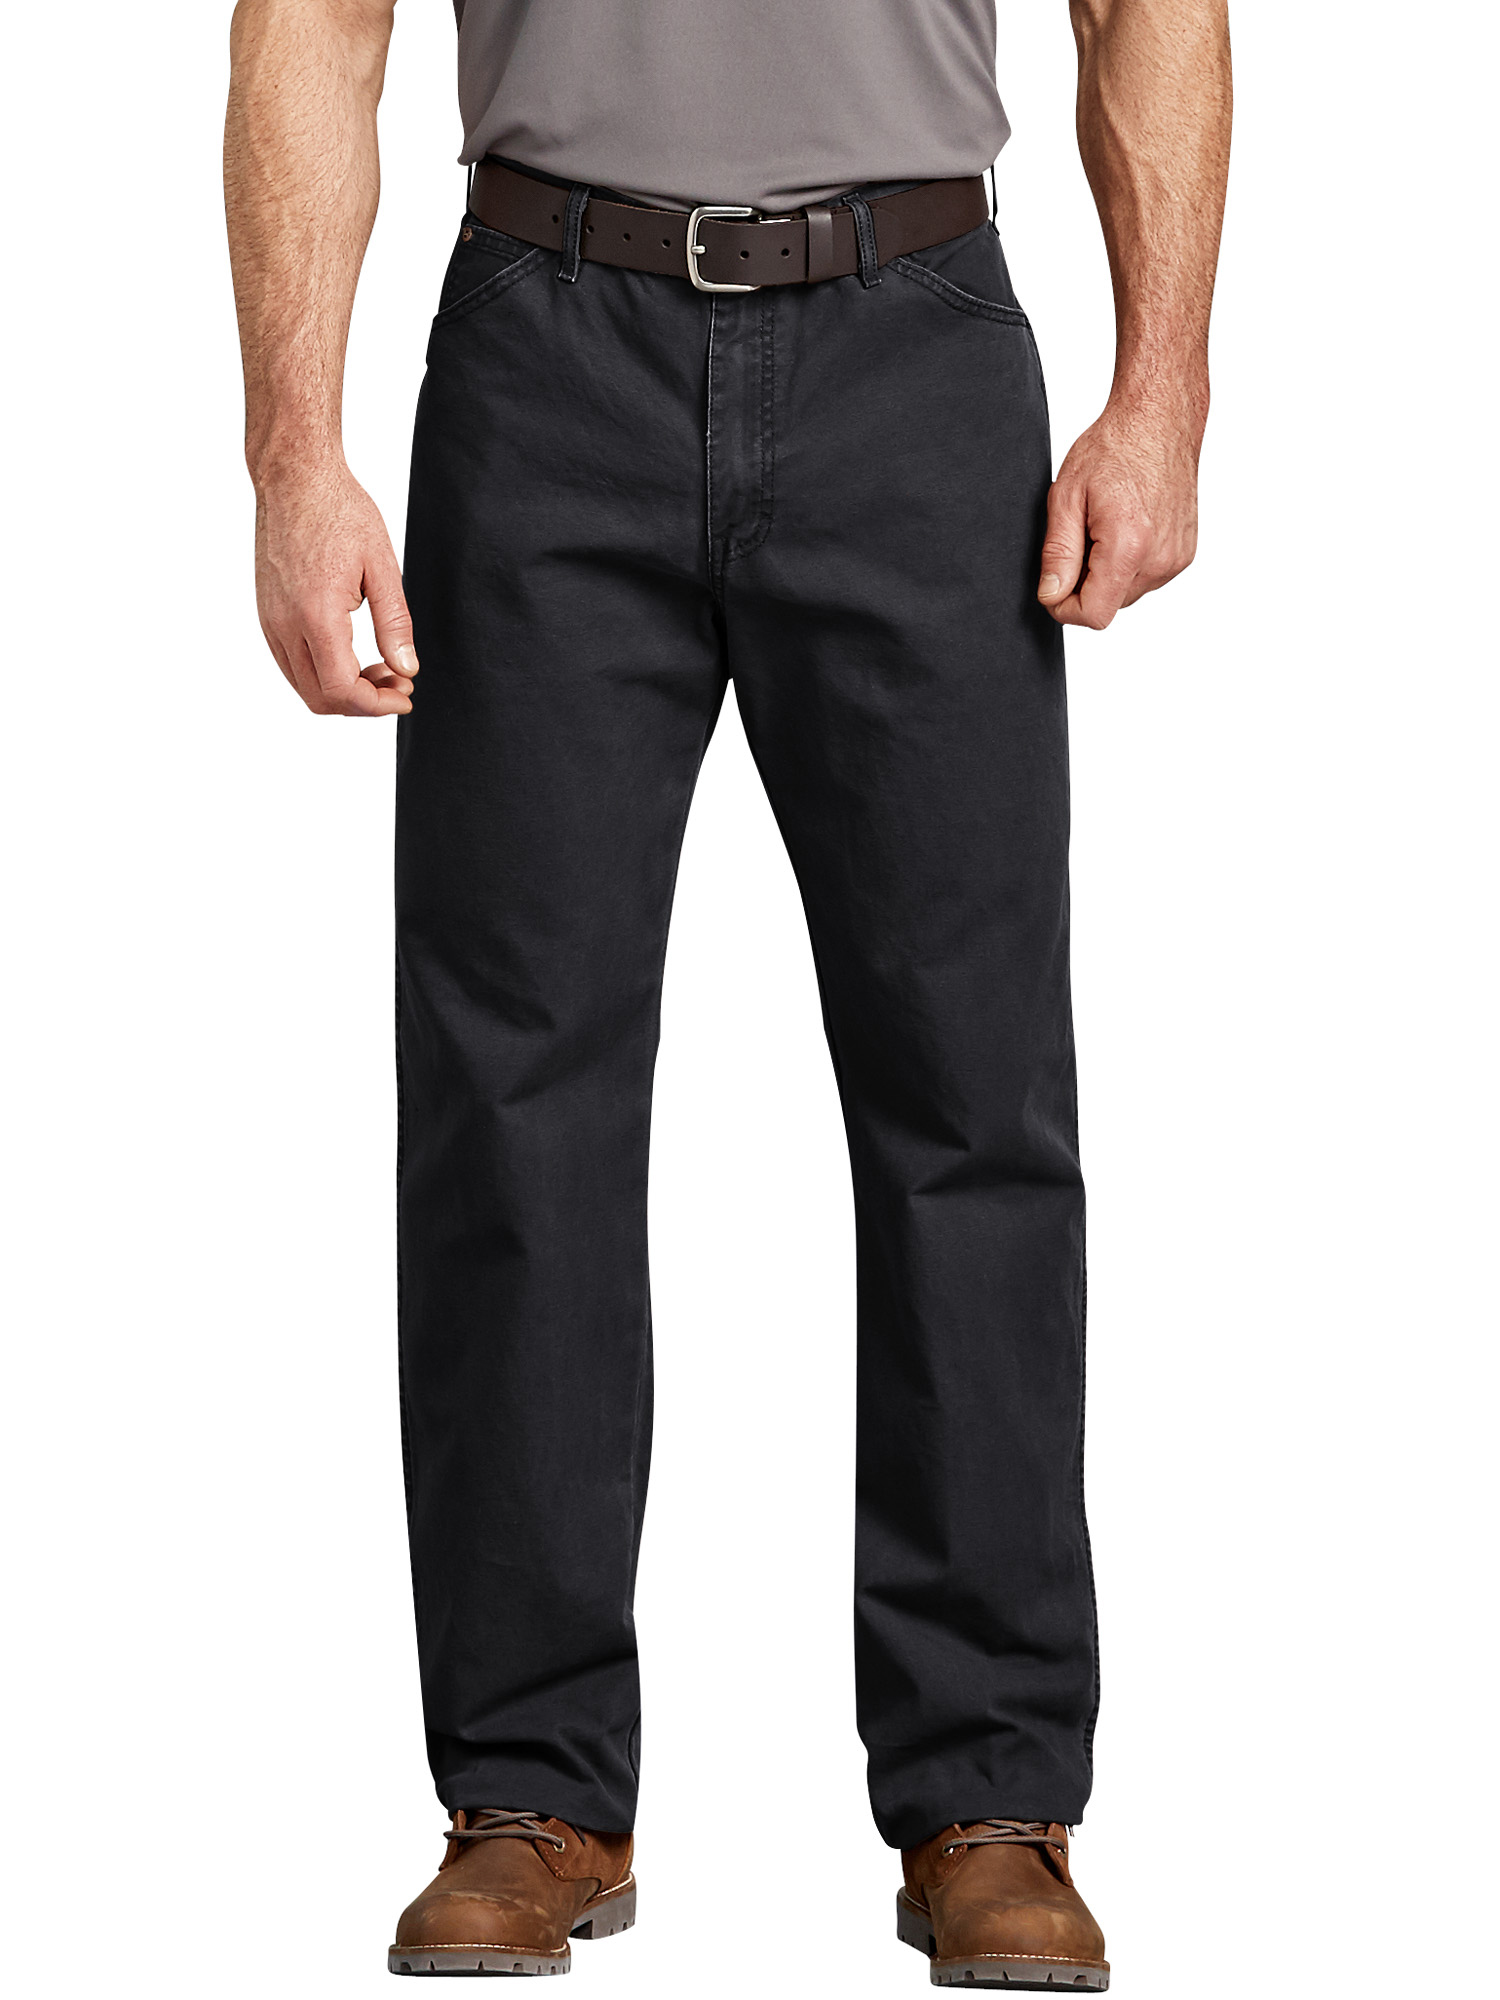 Men's Relaxed Fit Straight Leg Dungaree Jeans